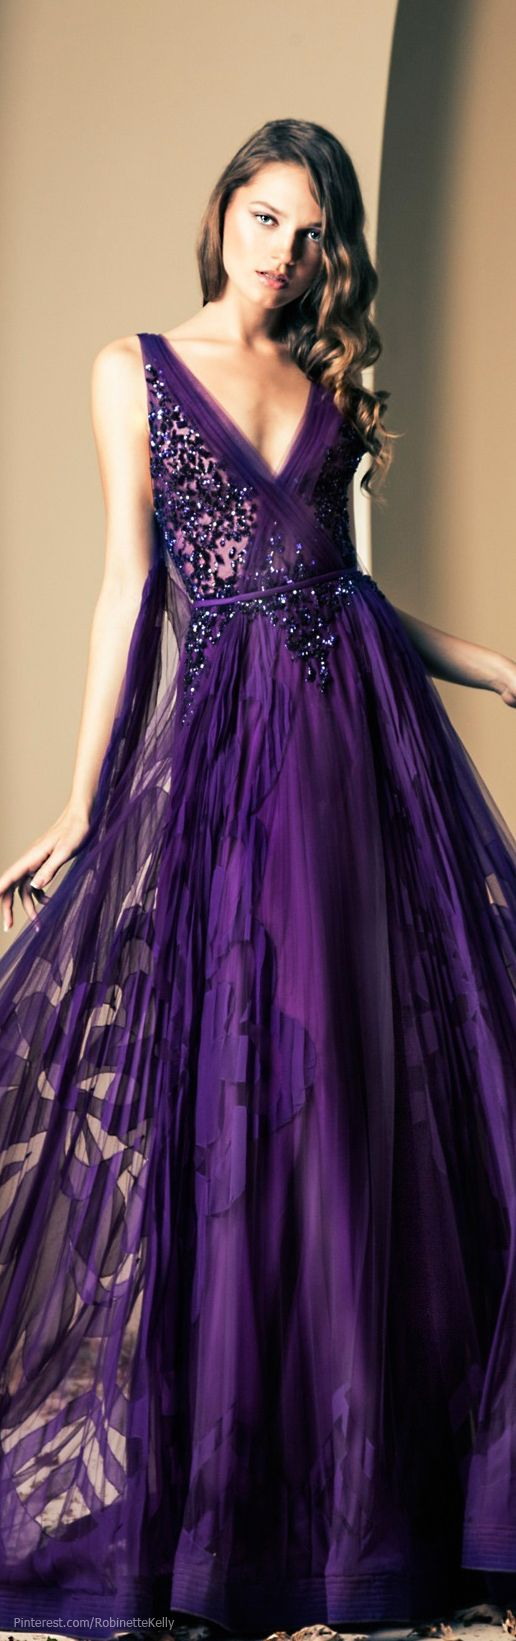 this is just gorgeous! I have no reason to ever wear anything like this ... but I love it :)